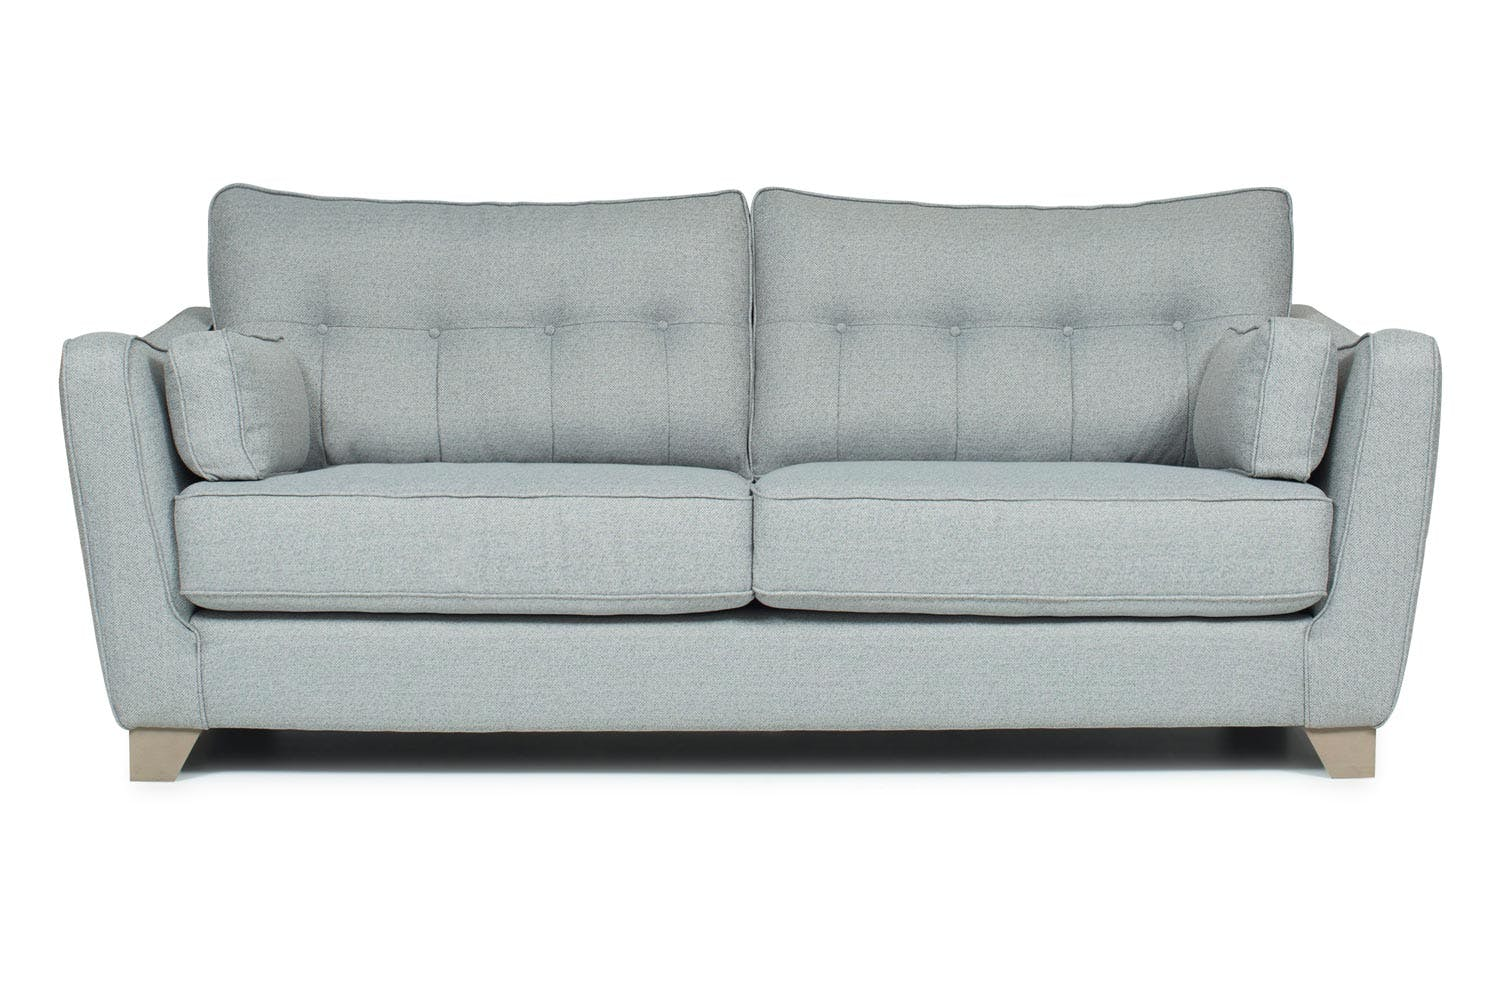 Sofa Sale Harveys Roxy 4 Seater Sofa Ireland